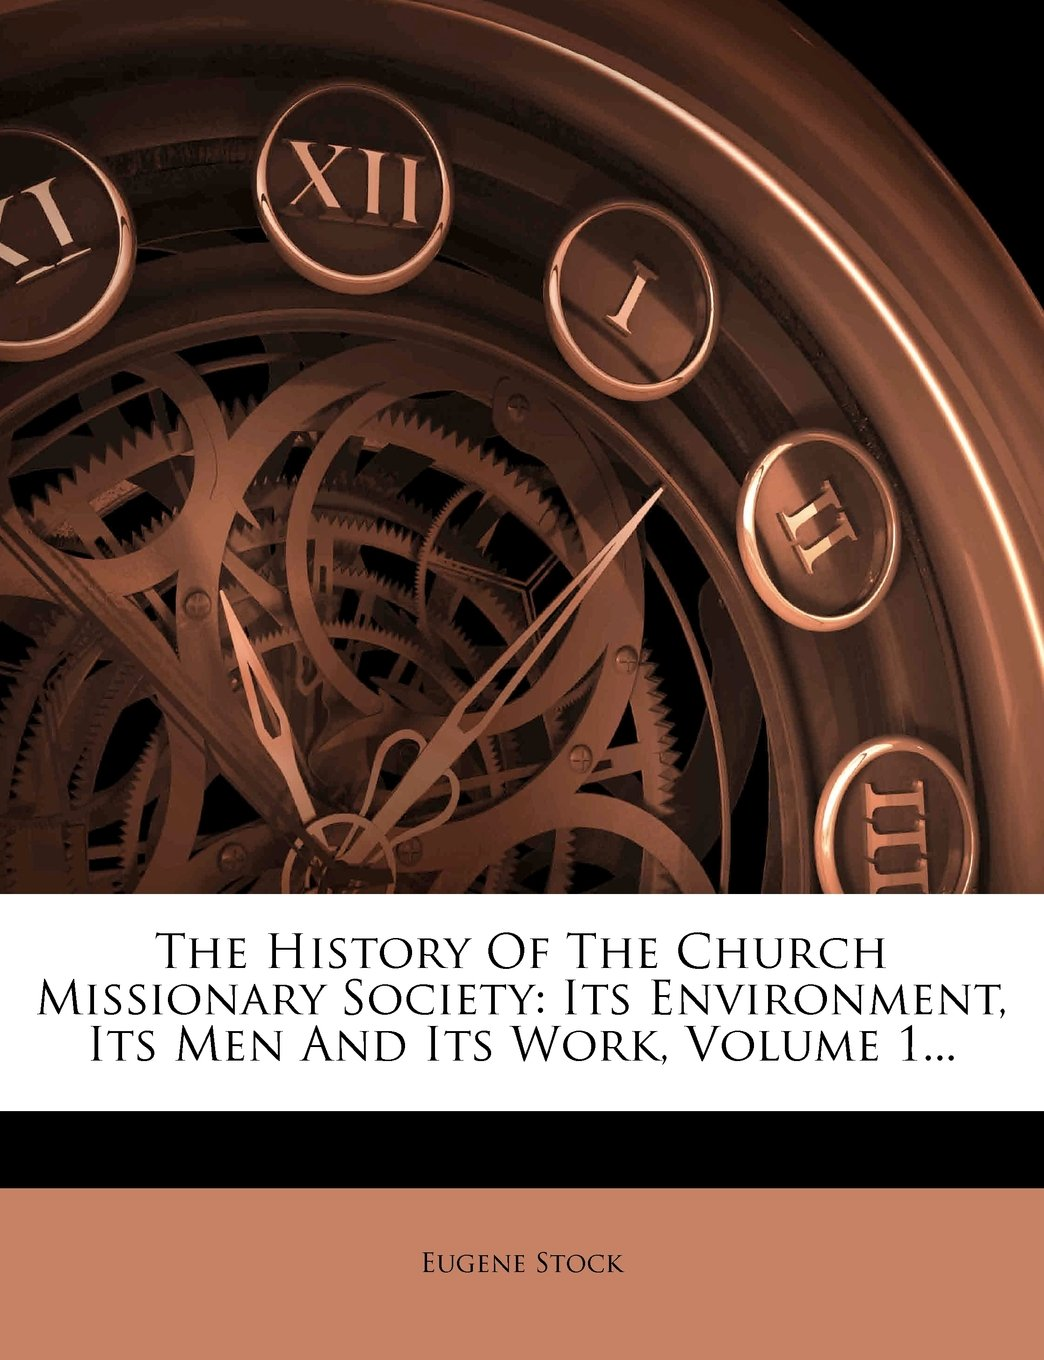 The History Of The Church Missionary Society: Its Environment, Its Men And Its Work, Volume 1... pdf epub